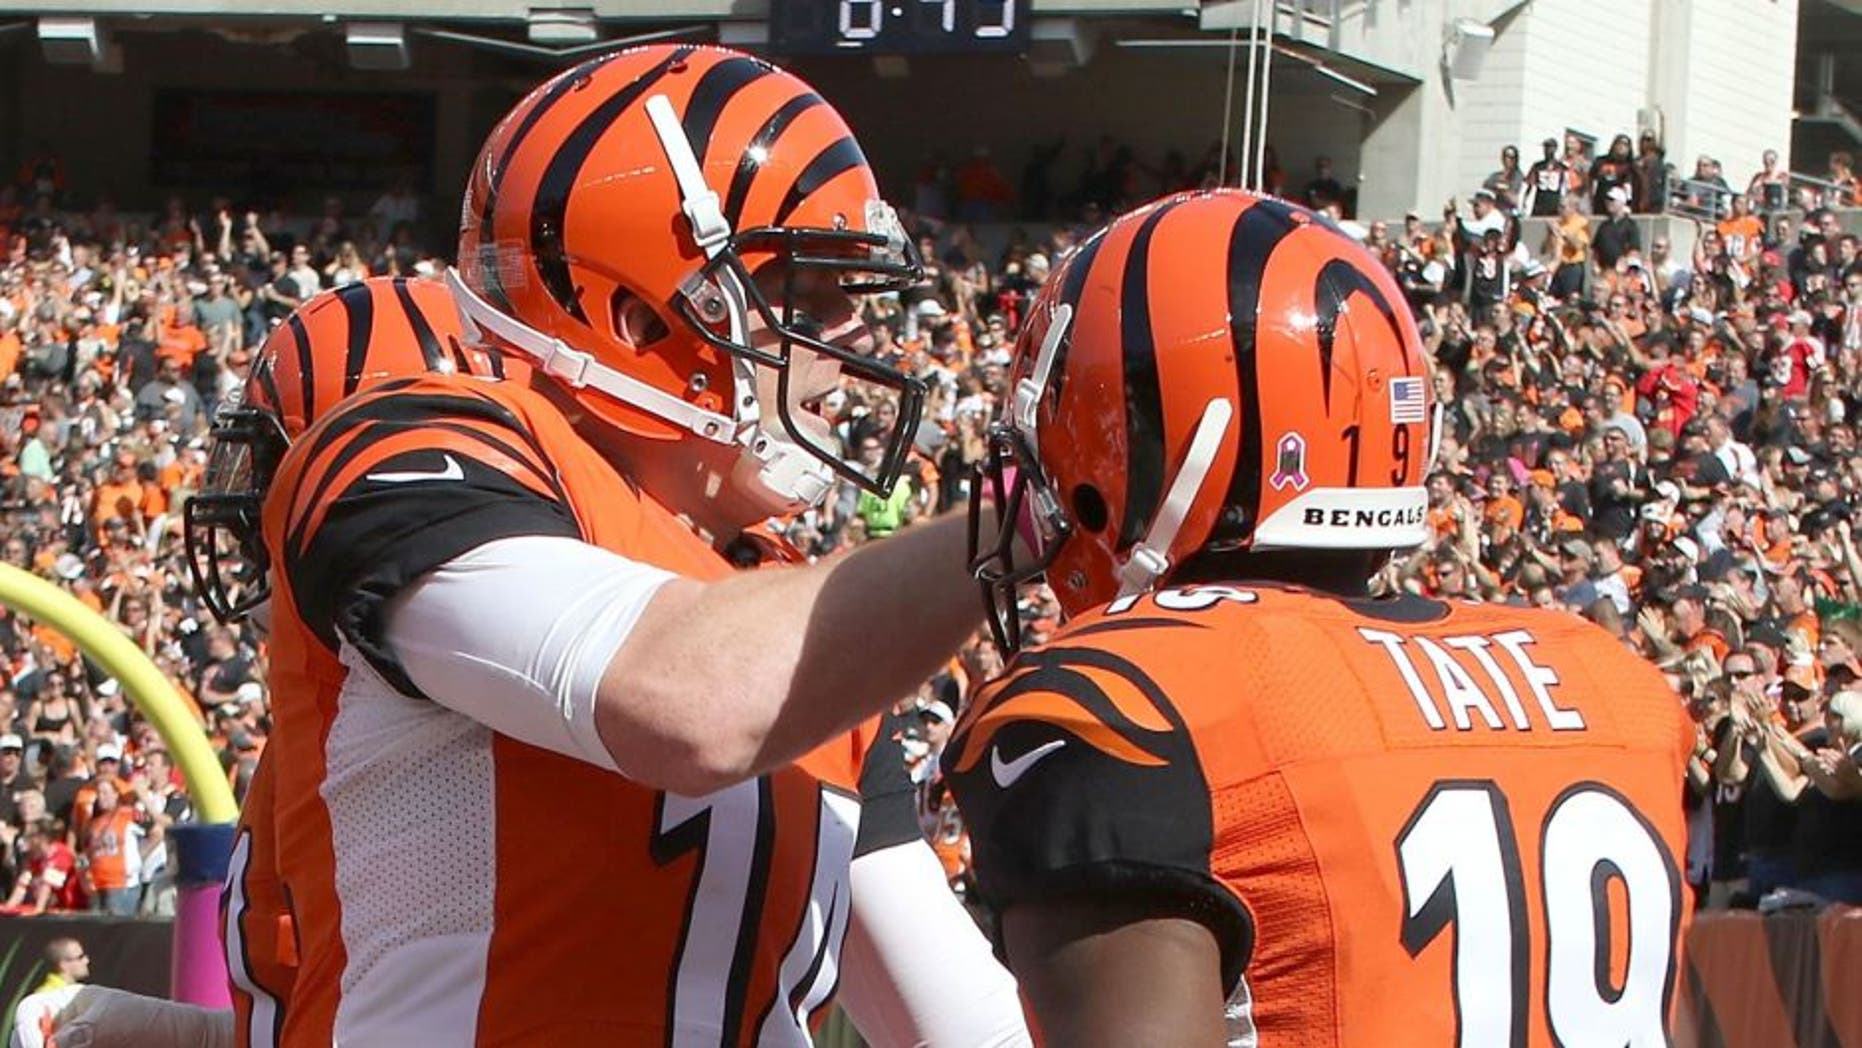 CINCINNATI, OH - OCTOBER 4: Andy Dalton #14 of the Cincinnati Bengals congratulates Brandon Tate #19 of the Cincinnati Bengals after scoring a touchdown on a 55 yard reception during the third quarter of the game against the Kansas City Chiefs at Paul Brown Stadium on October 4, 2015 in Cincinnati, Ohio. (Photo by John Grieshop/Getty Images)